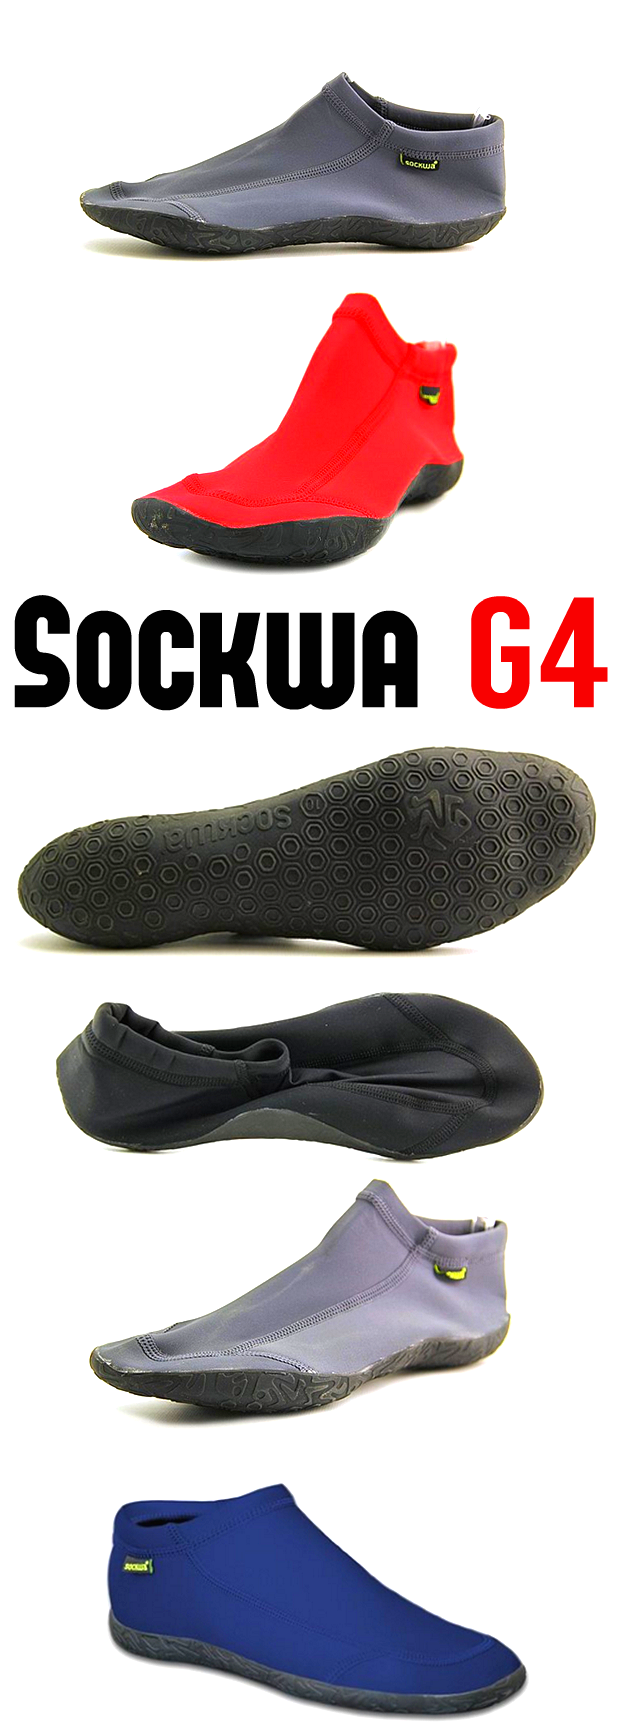 Sockwa G4 Review for Forefoot Running